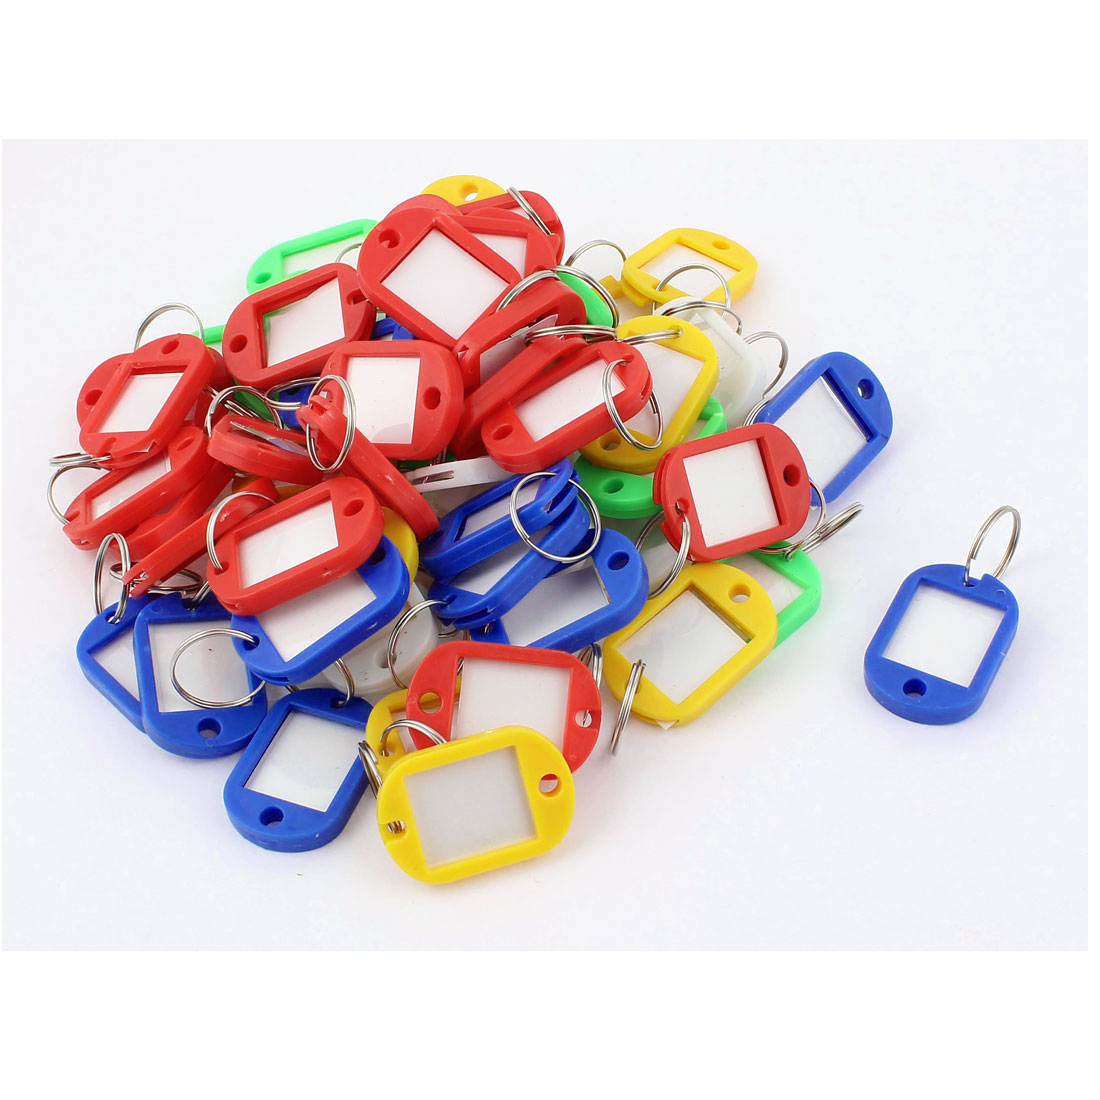 60pcs Assorted Color Plastic Oval Design Key Fobs Luggage Room ID Label Name Tag w Split Ring Keyring